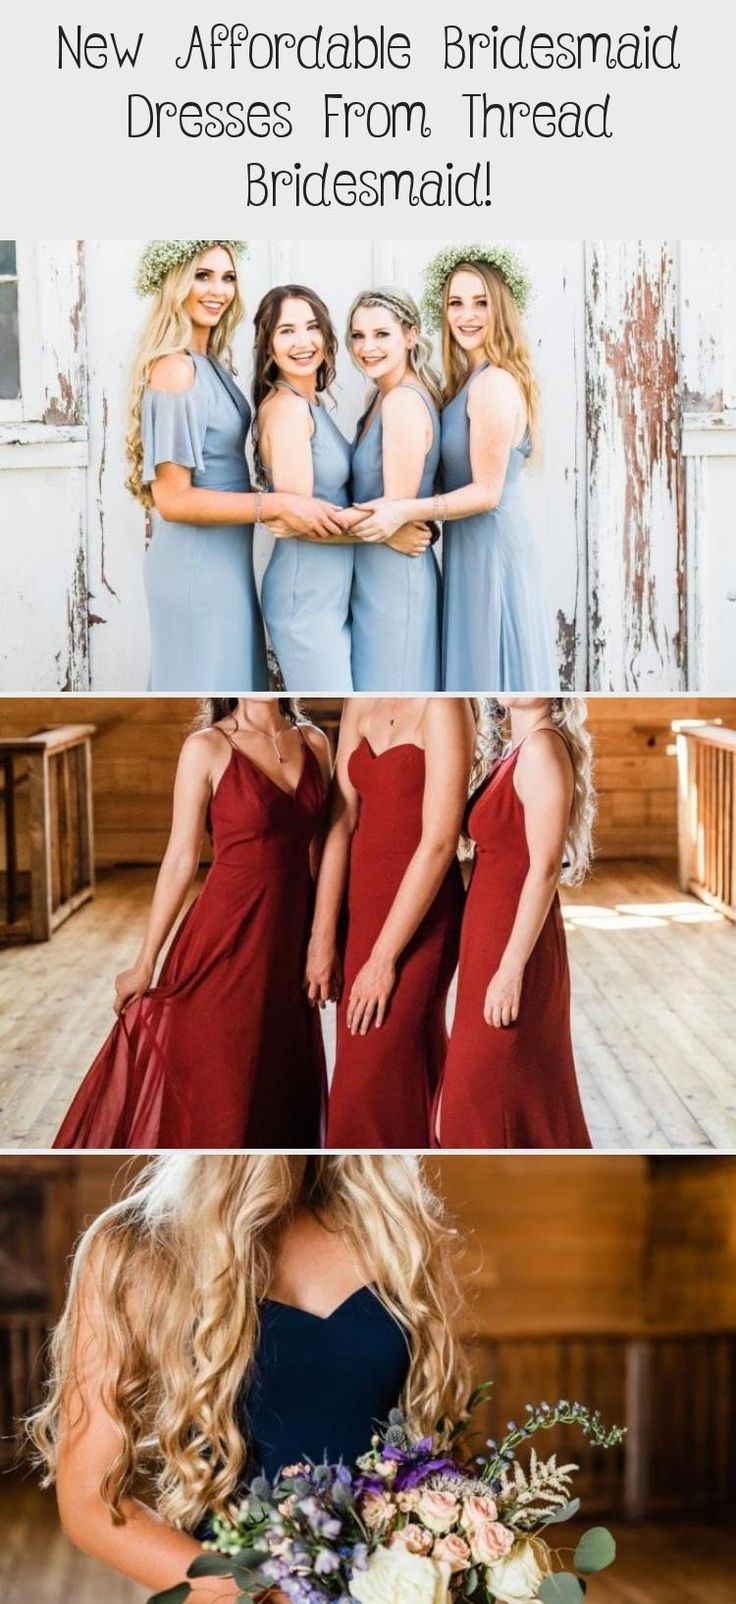 Light blue boho style affordable dresses for bridesmaids from Thread Bridesmaid! #bridesmaids #bridesmaid #bridesmaiddresses #ChampagneBridesmaidDresses #BridesmaidDressesShort #BridesmaidDressesMint #BridesmaidDressesStyles #MixAndMatchBridesmaidDresses